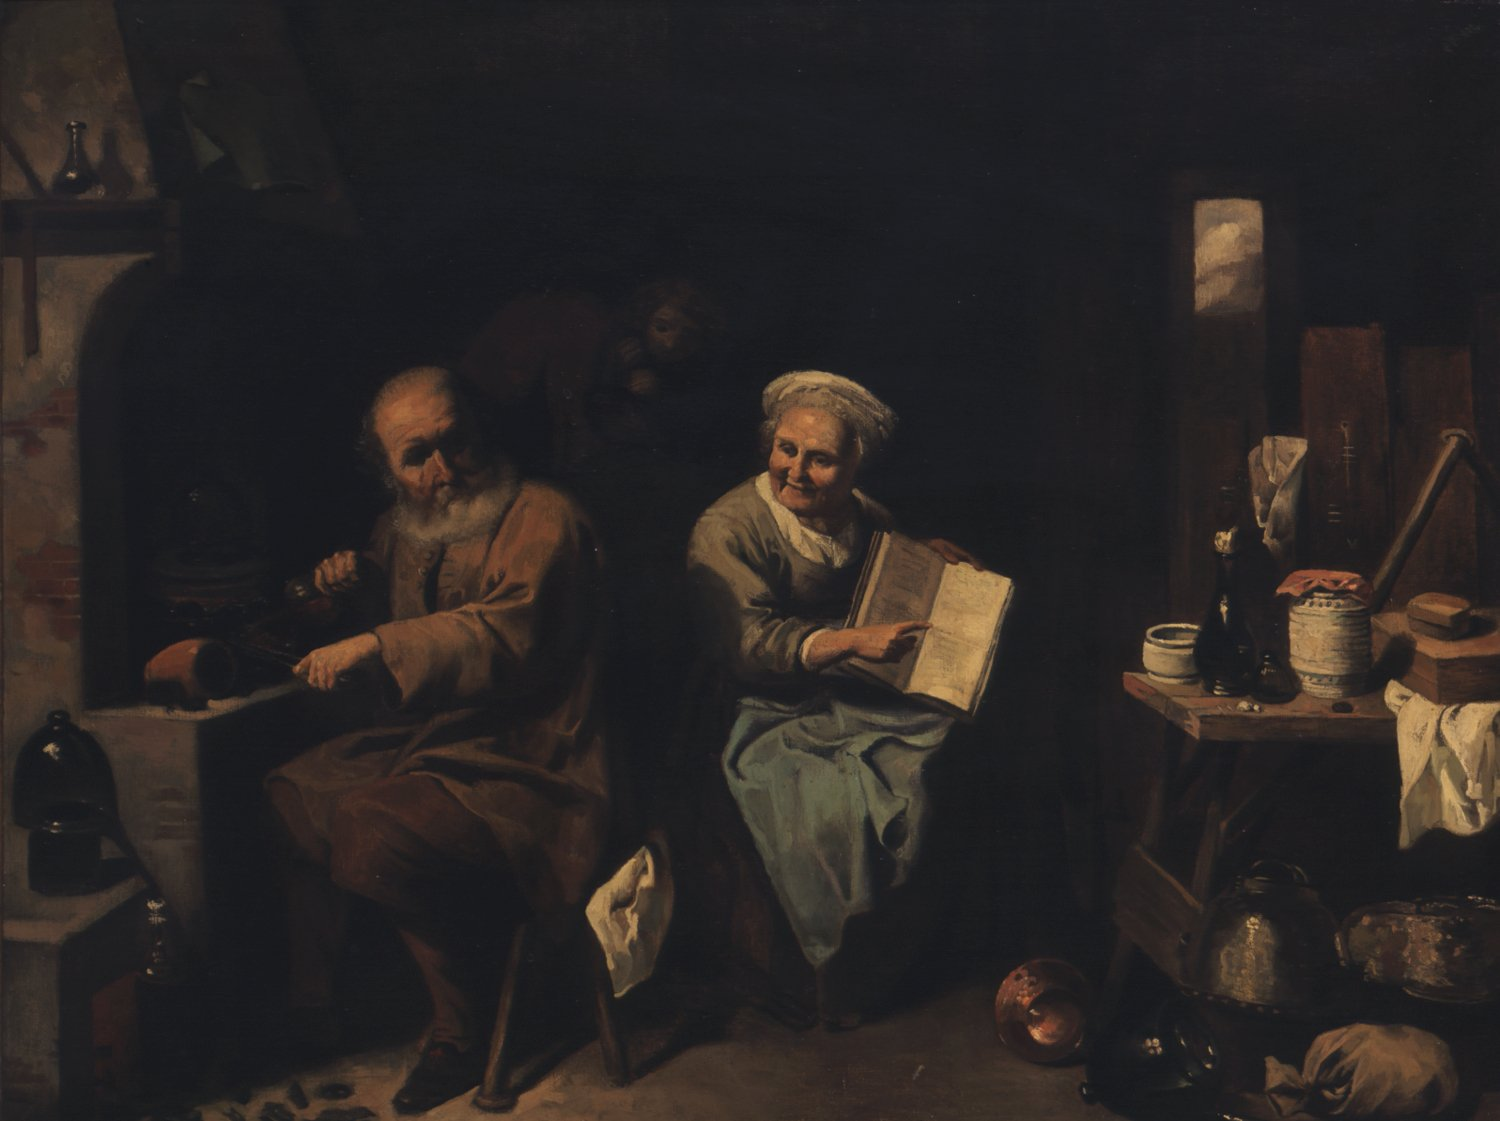 Welcome to #MuseumMonday! Today we're looking at depictions of women in the Chem Heritage early modern art collections #WomensHistoryMonth https://t.co/6JBjowlWVU